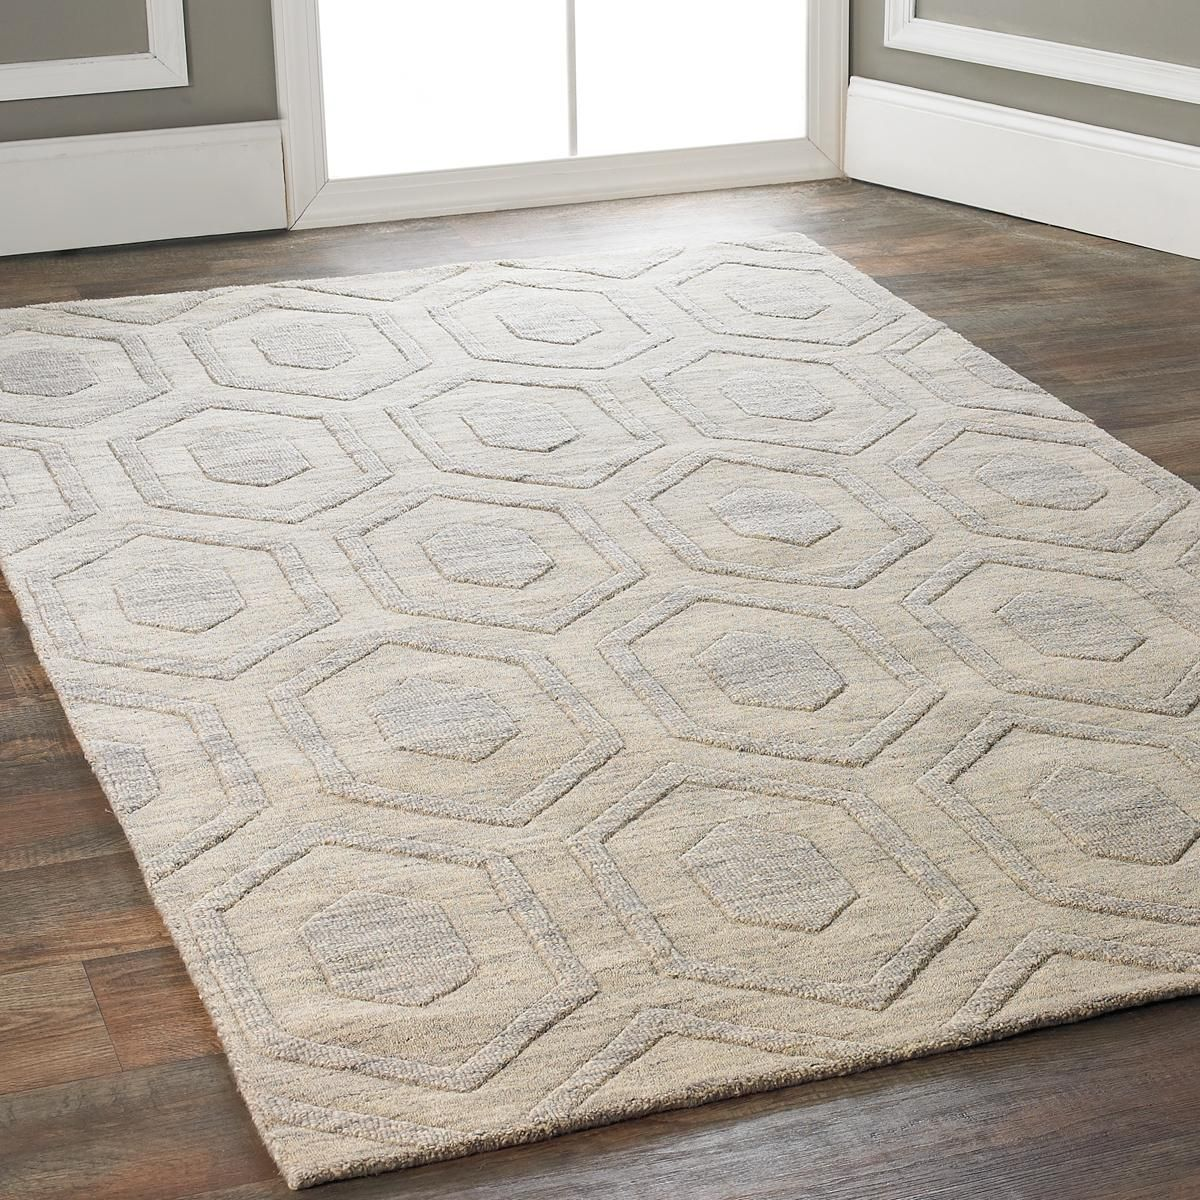 Hexagon hues solid color rug taupe stone and modern for What does taupe mean